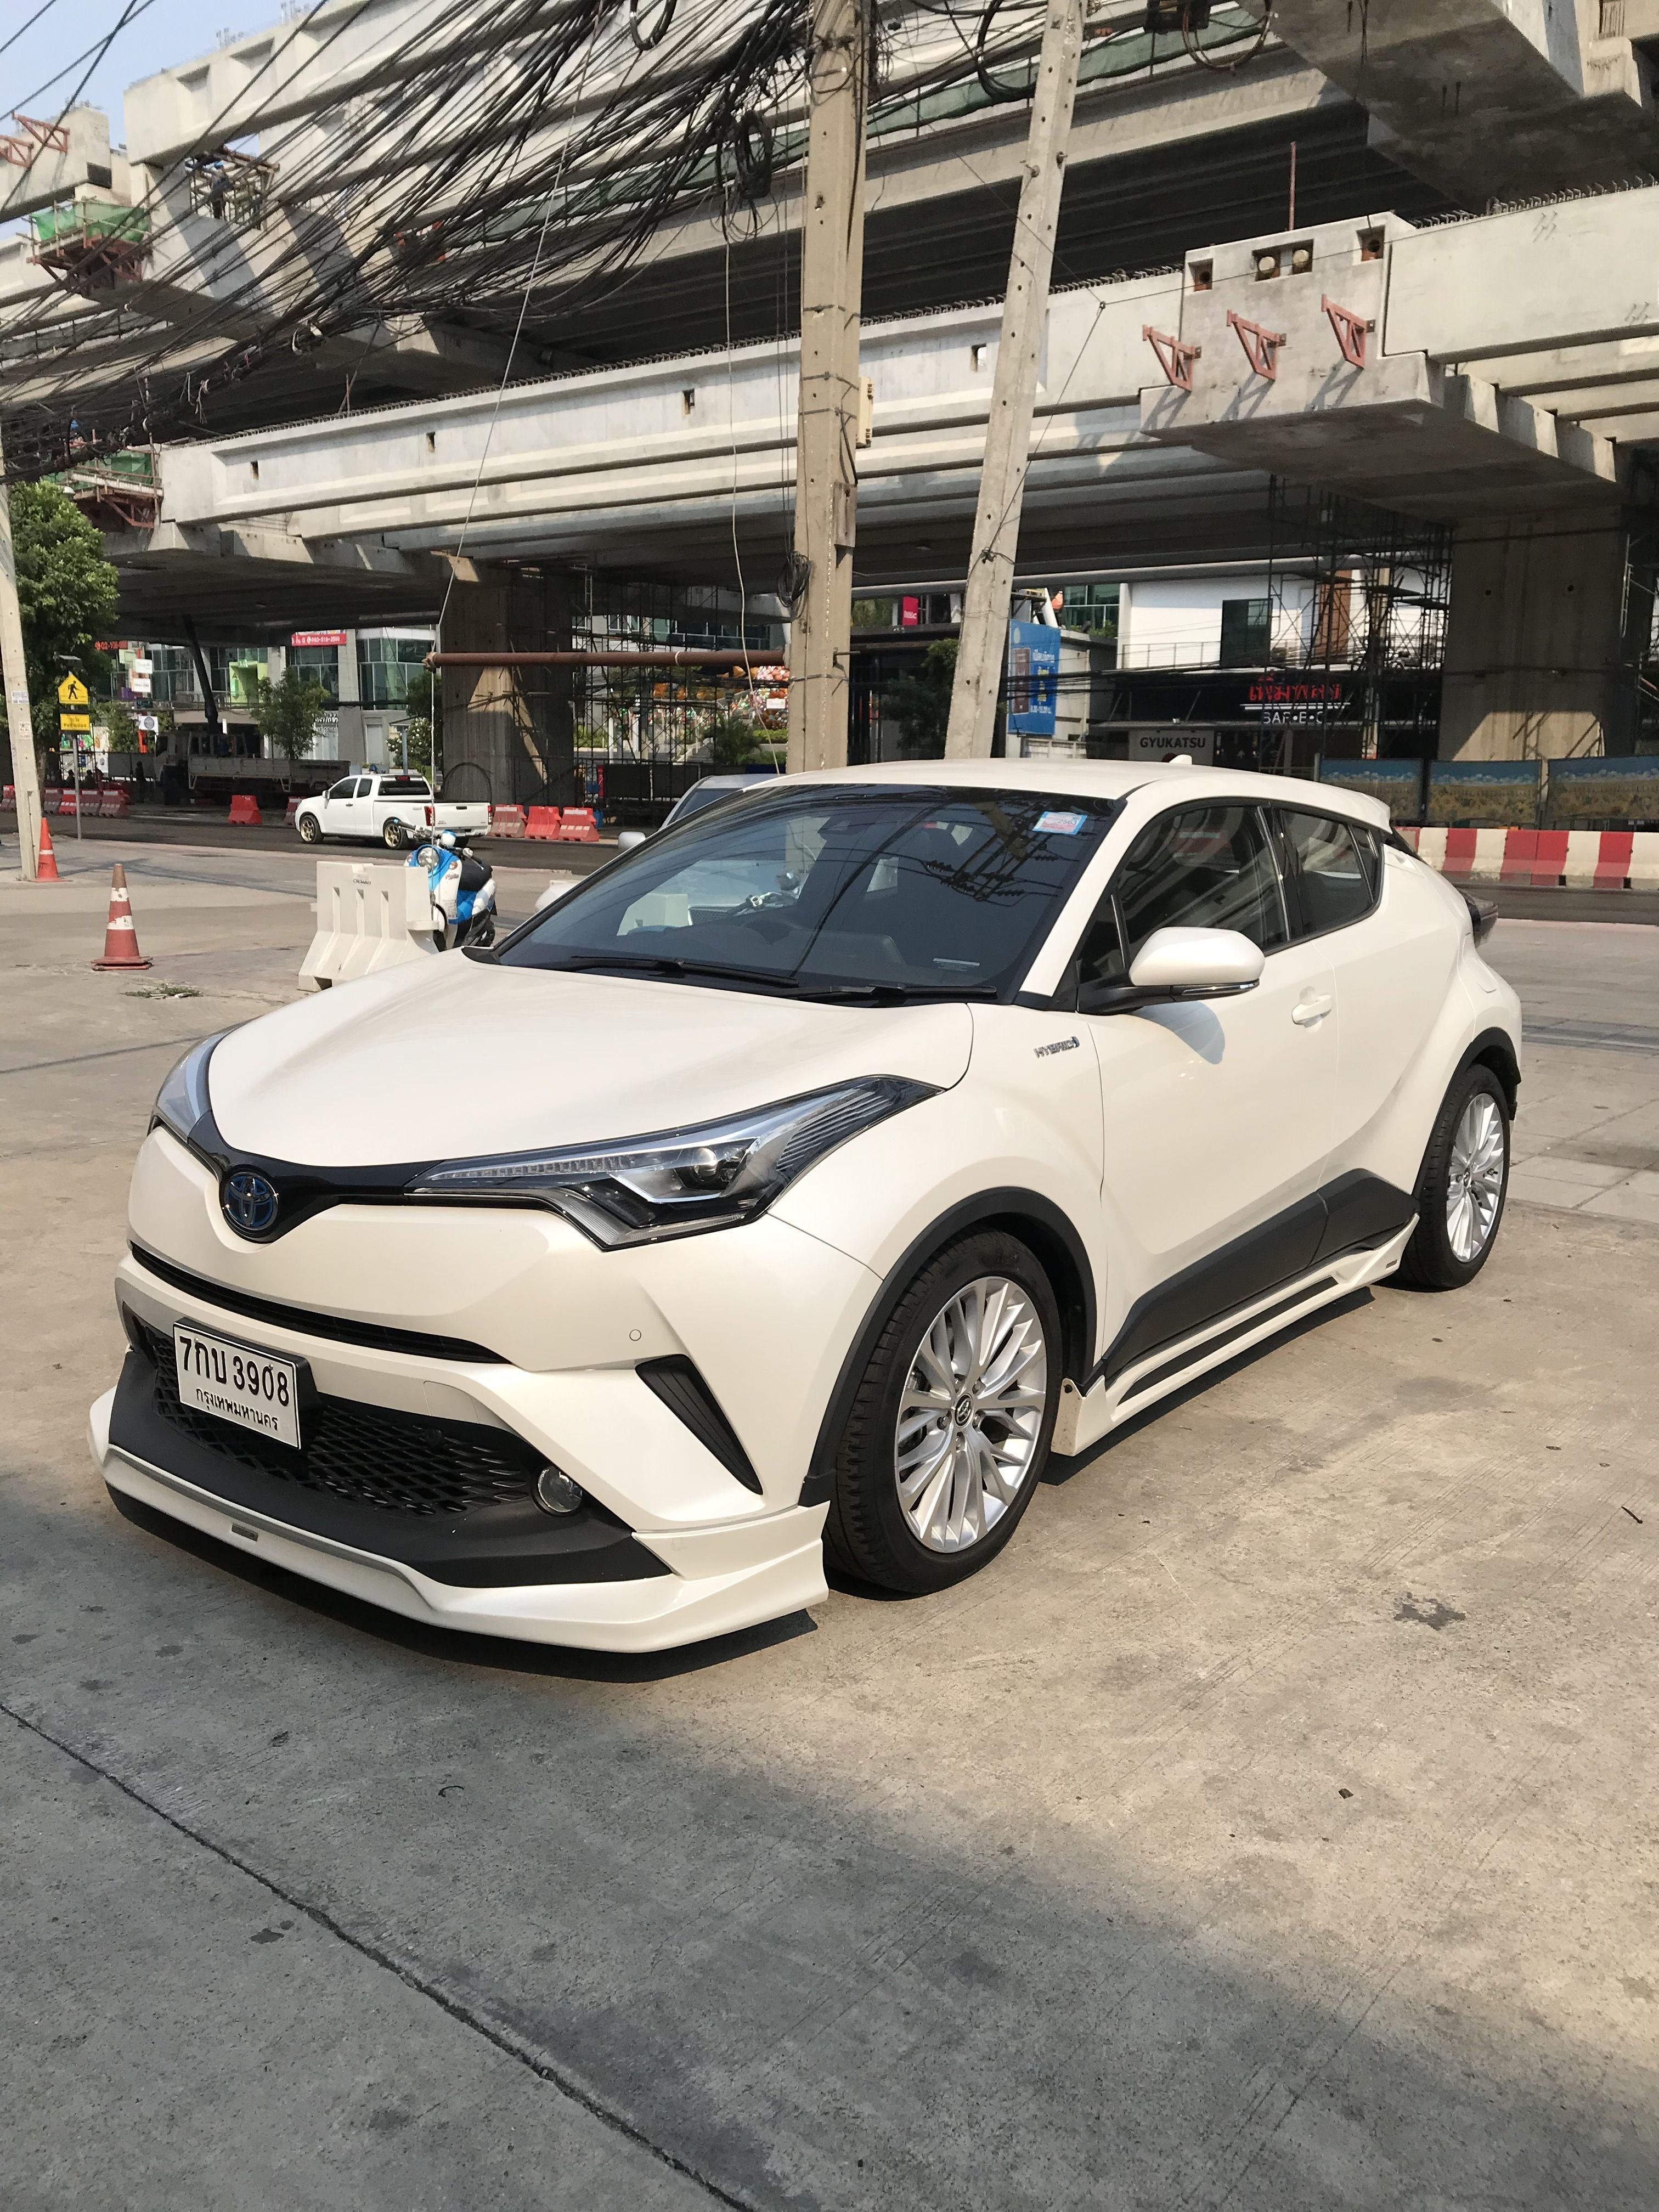 Toyota C Hr Hybrid 2020 27 Lakh Real Life Review In 2020 Toyota Toyota C Hr Subcompact